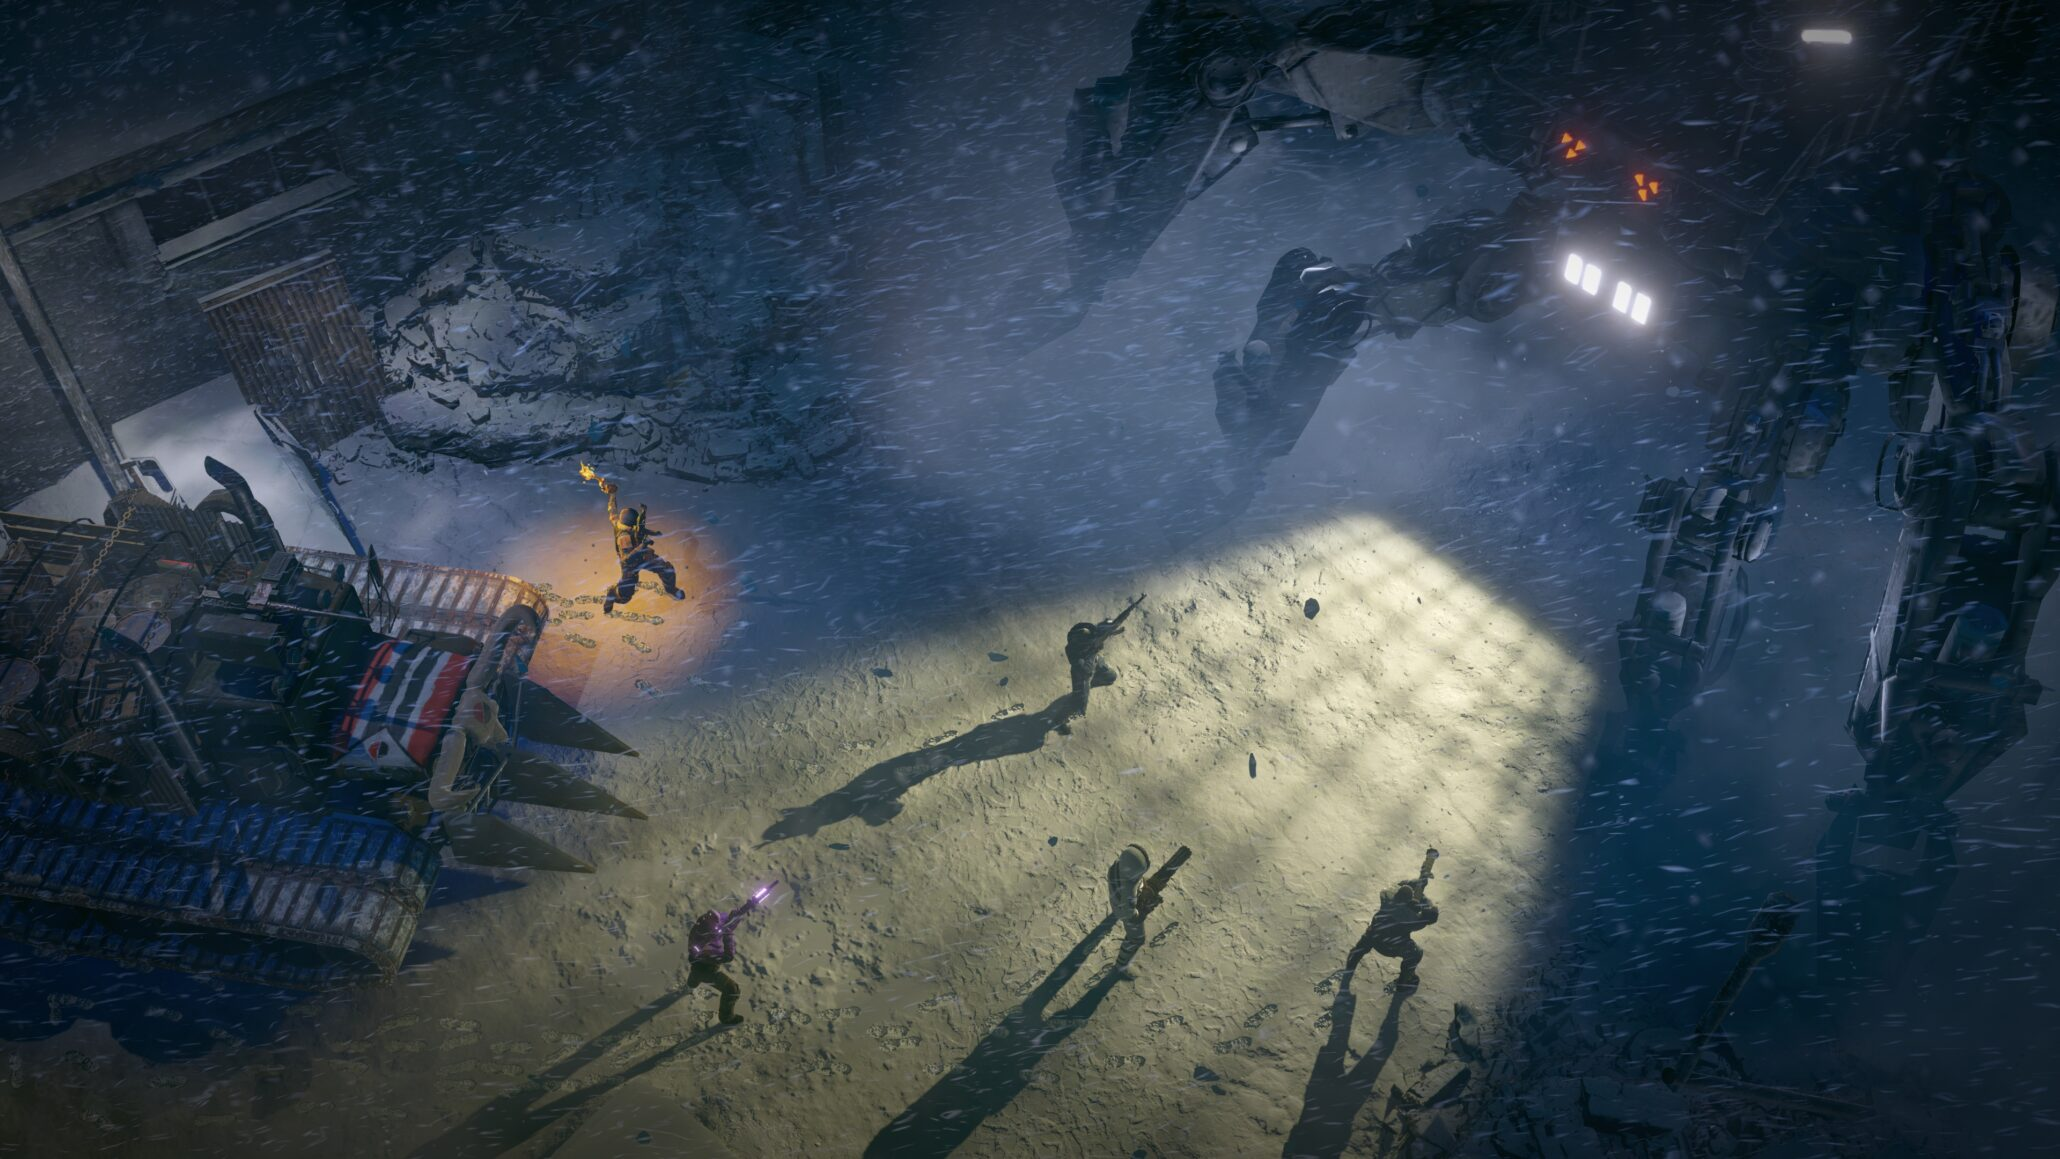 Wasteland 3 Interview - Brian Fargo: We Want to Work on This